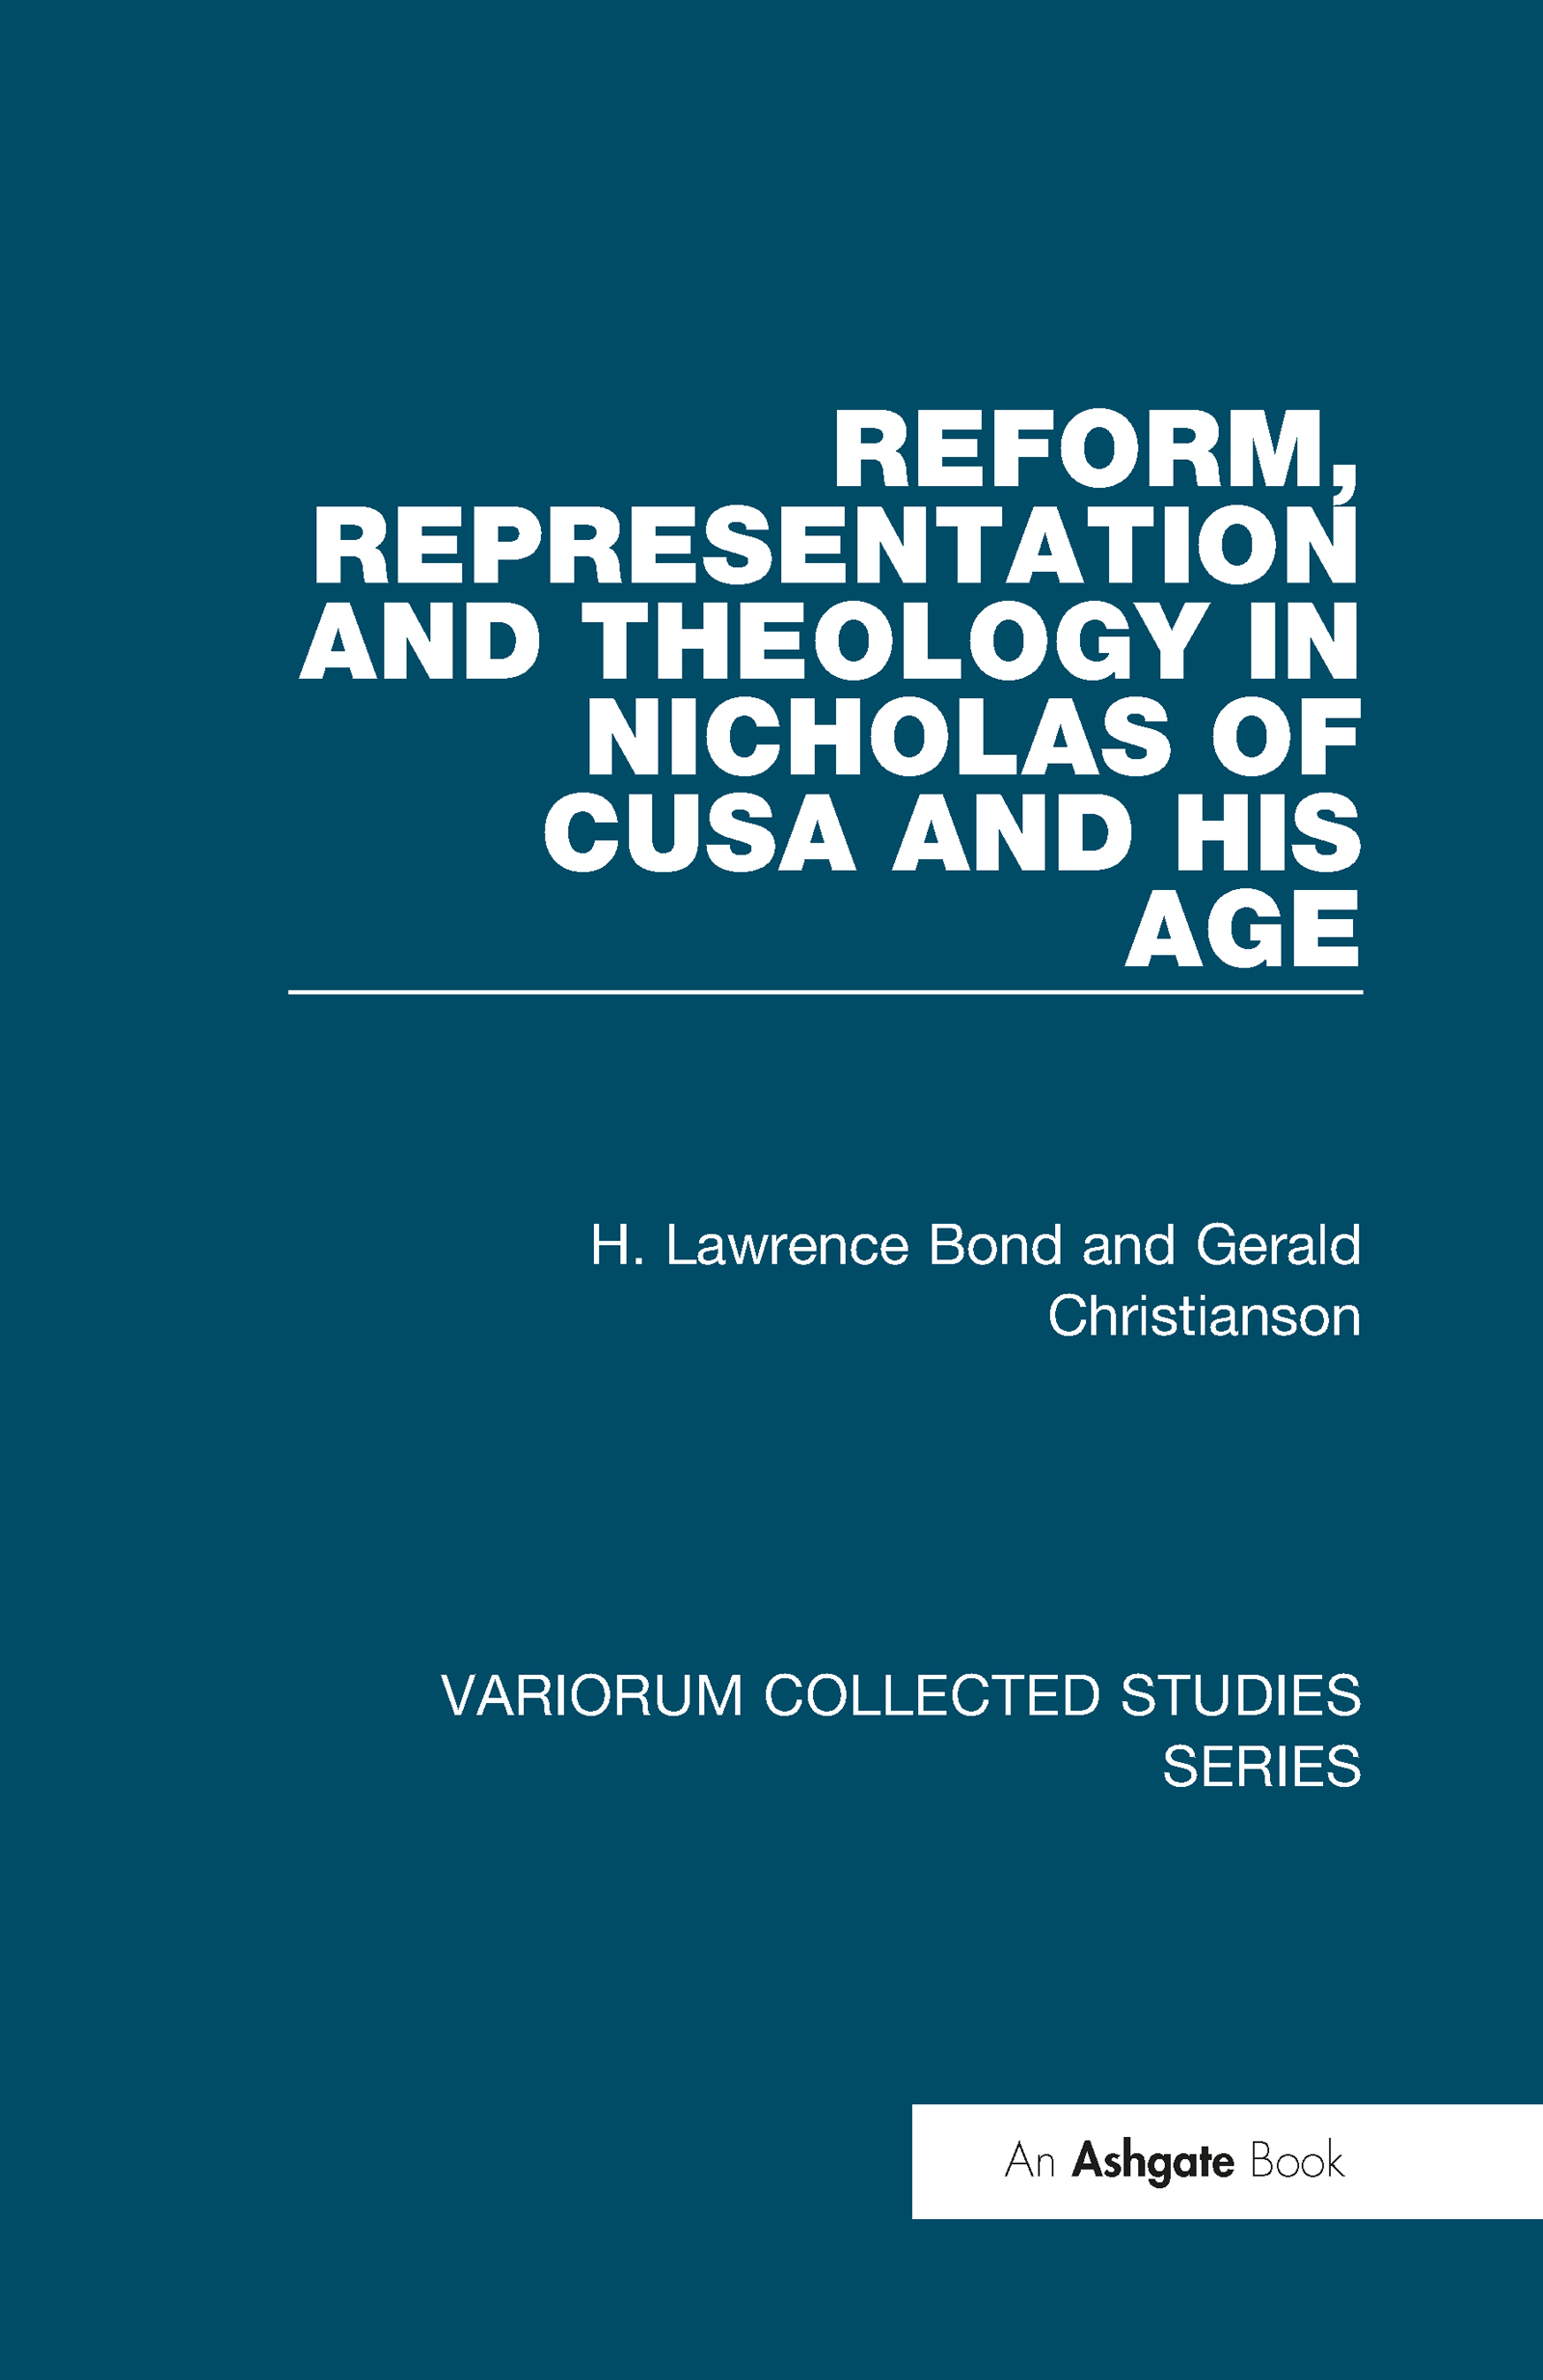 Reform, Representation and Theology in Nicholas of Cusa and His Age book cover